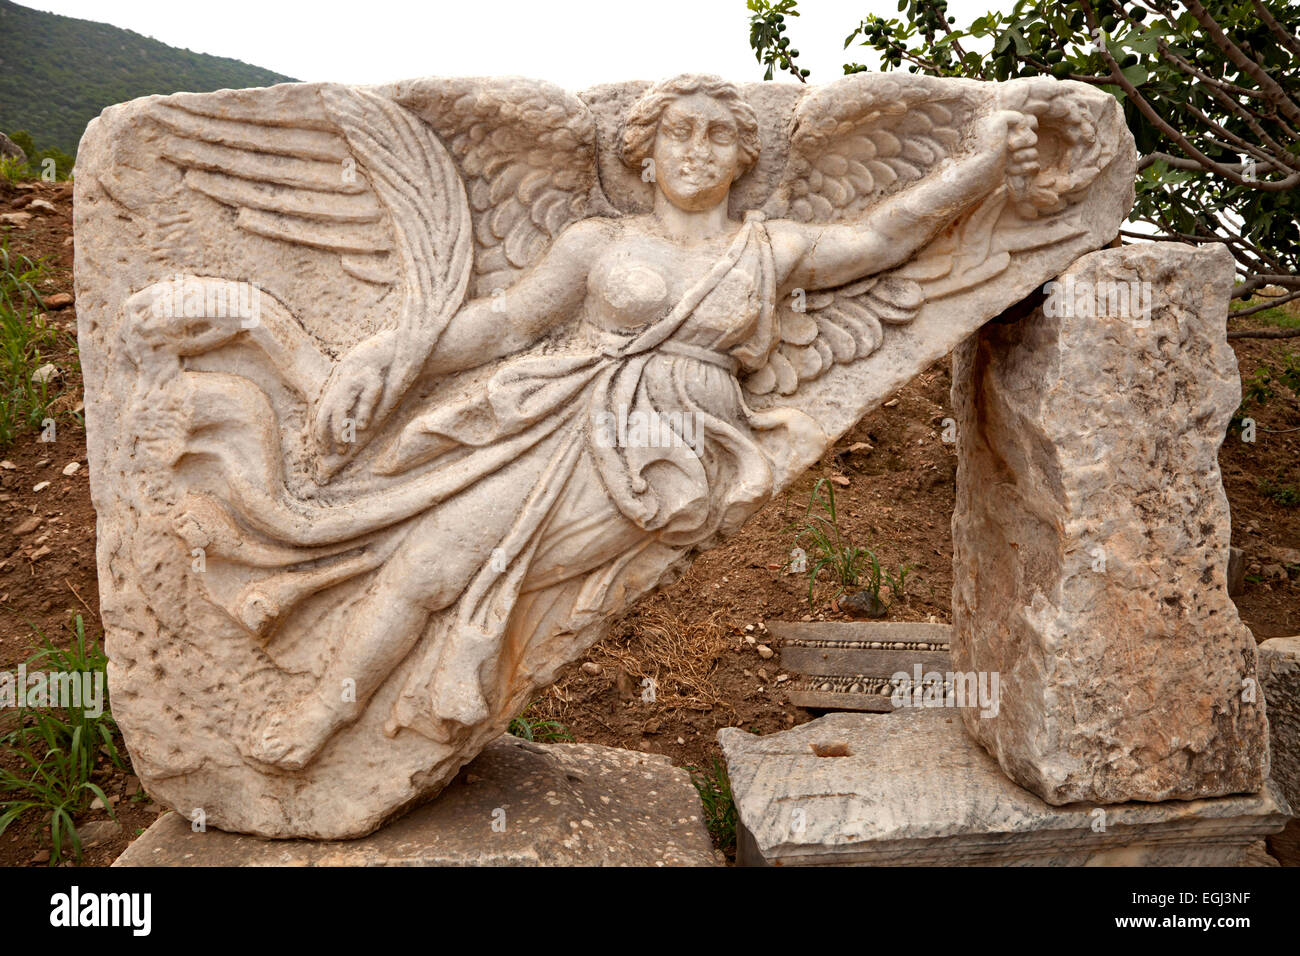 Turkey, Ephesos, ancient times, ruin - Stock Image